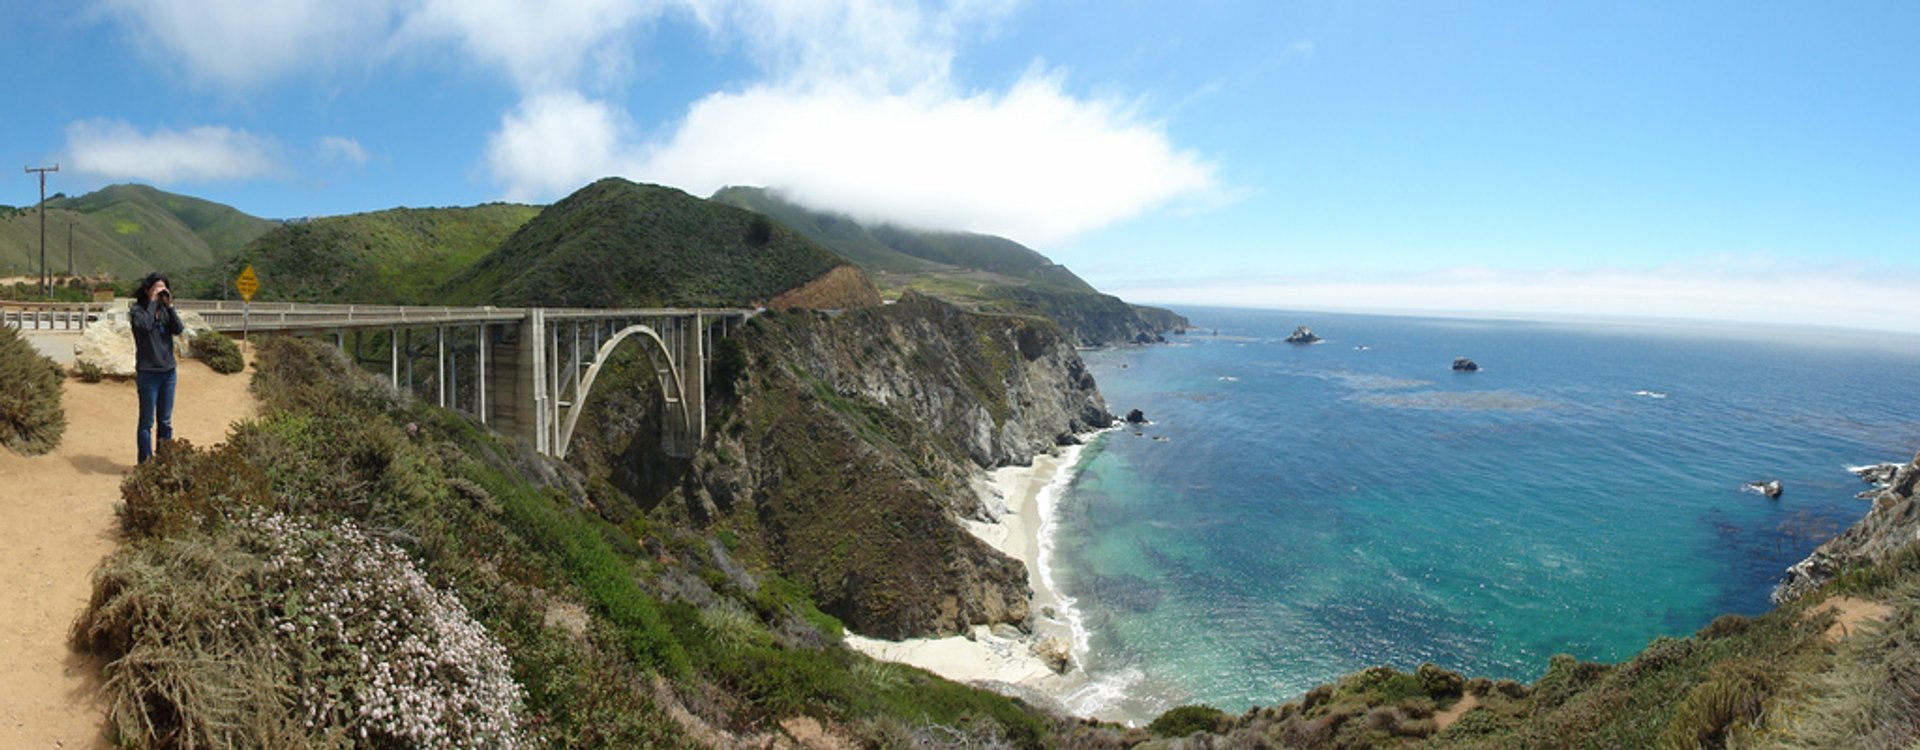 Big Sur in California - Best Season